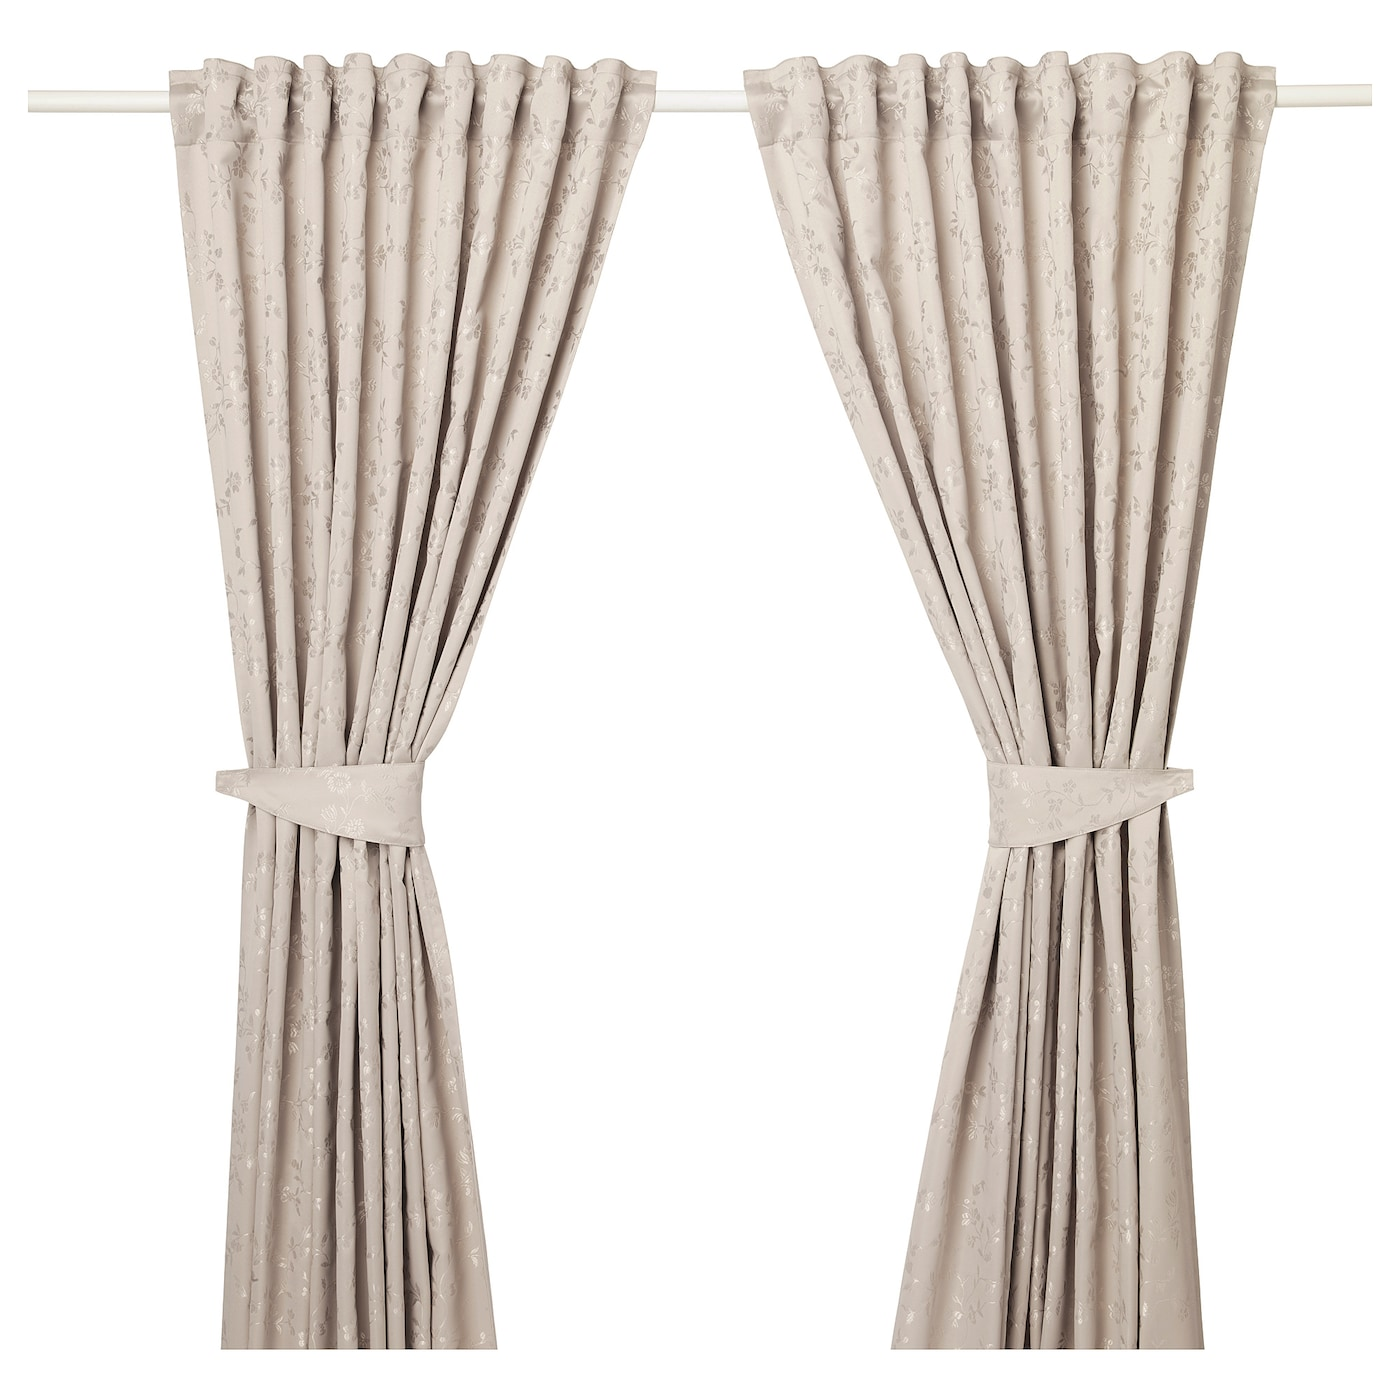 Ikea Lisabritt Curtains With Tie Backs 1 Pair